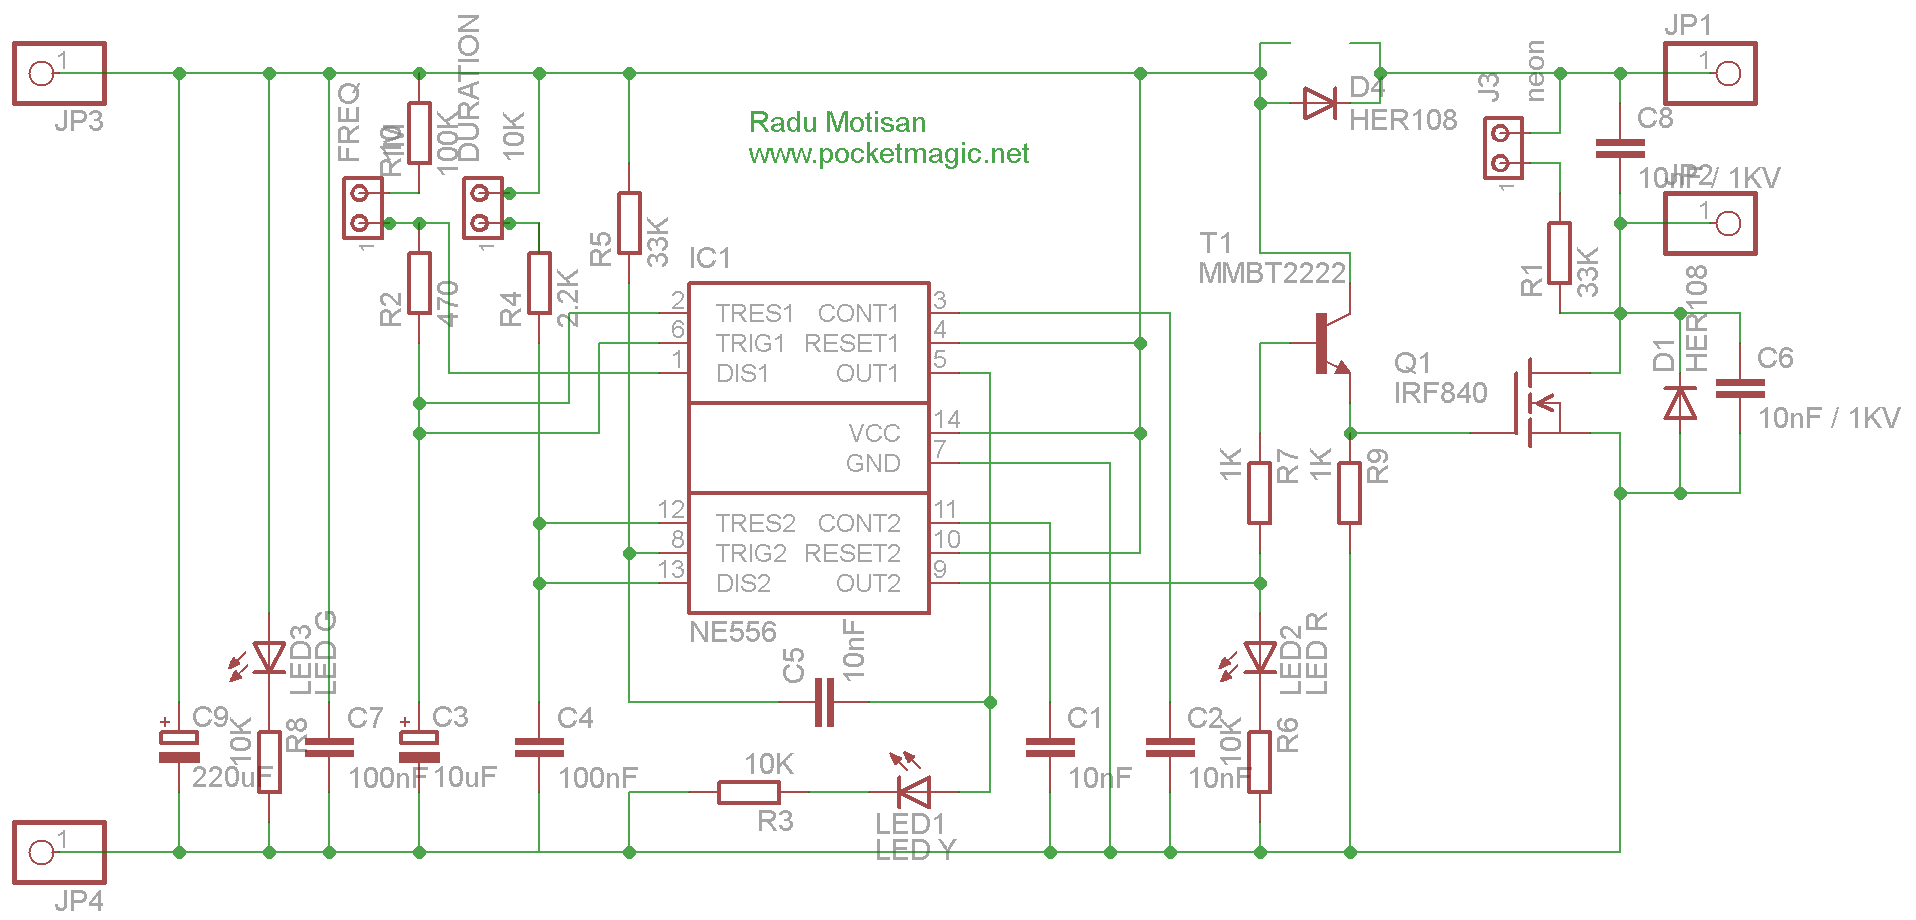 Electric Fence Circuit Diagram Wiring diagram – Electric Fence Wiring Diagram